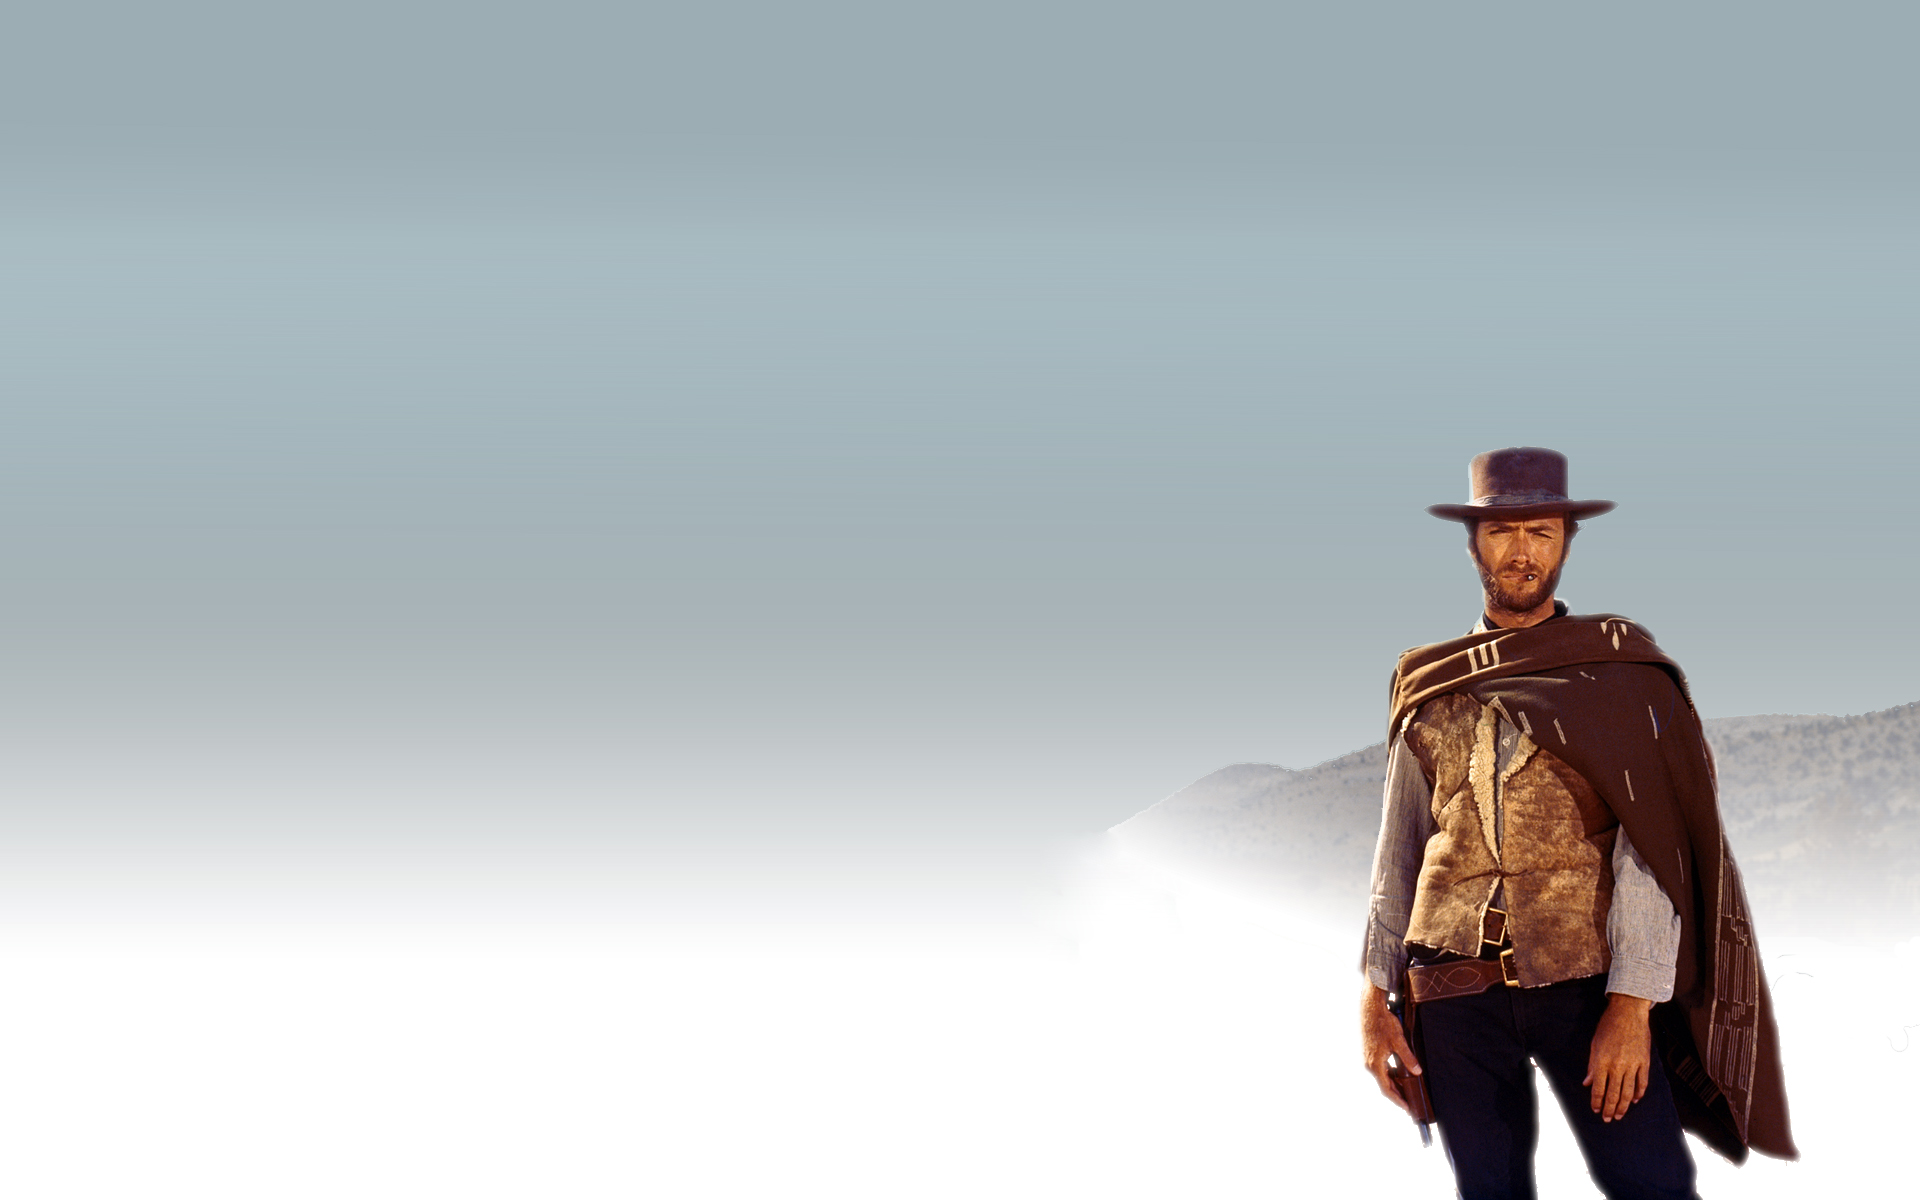 Clint Eastwood Wallpaper